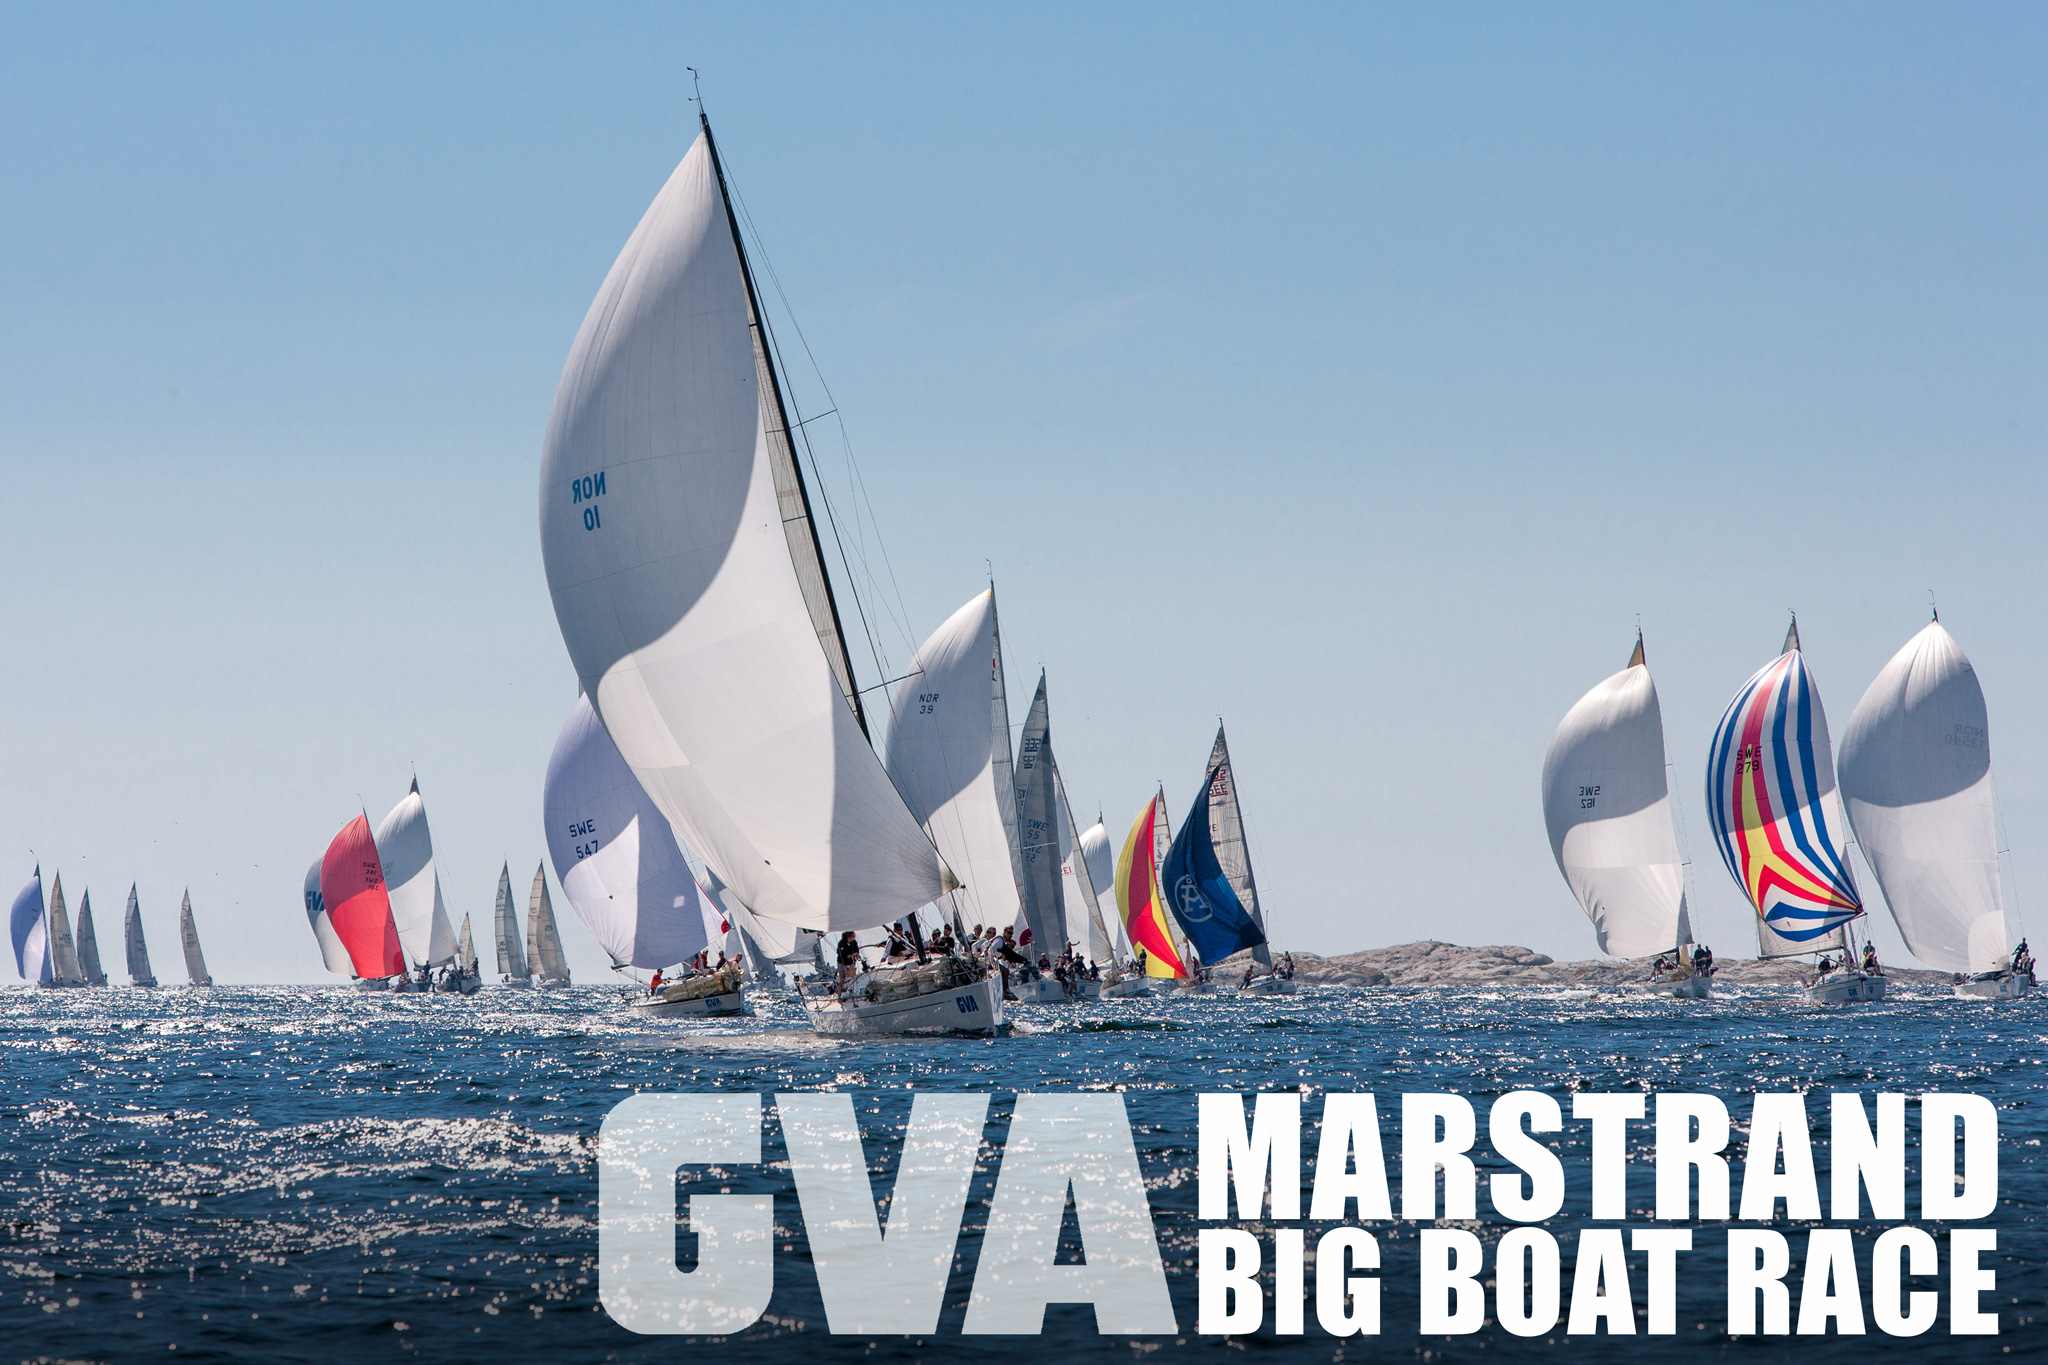 Marstrand Big Boat Race 2014 Poster